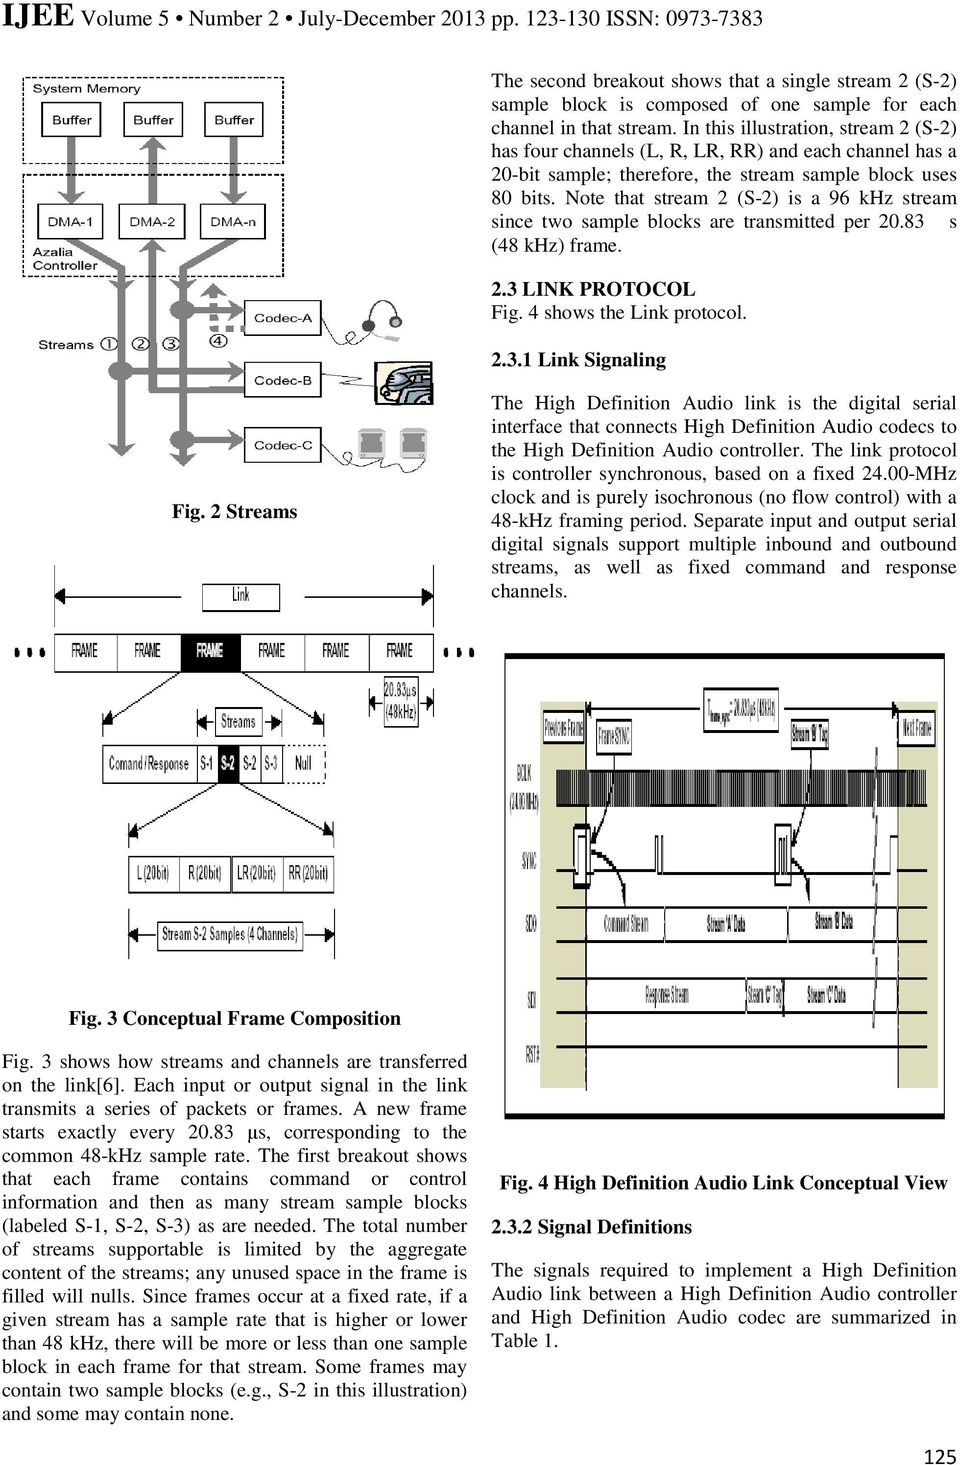 Design and Verification for High Definition Audio CODEC Controller - PDF